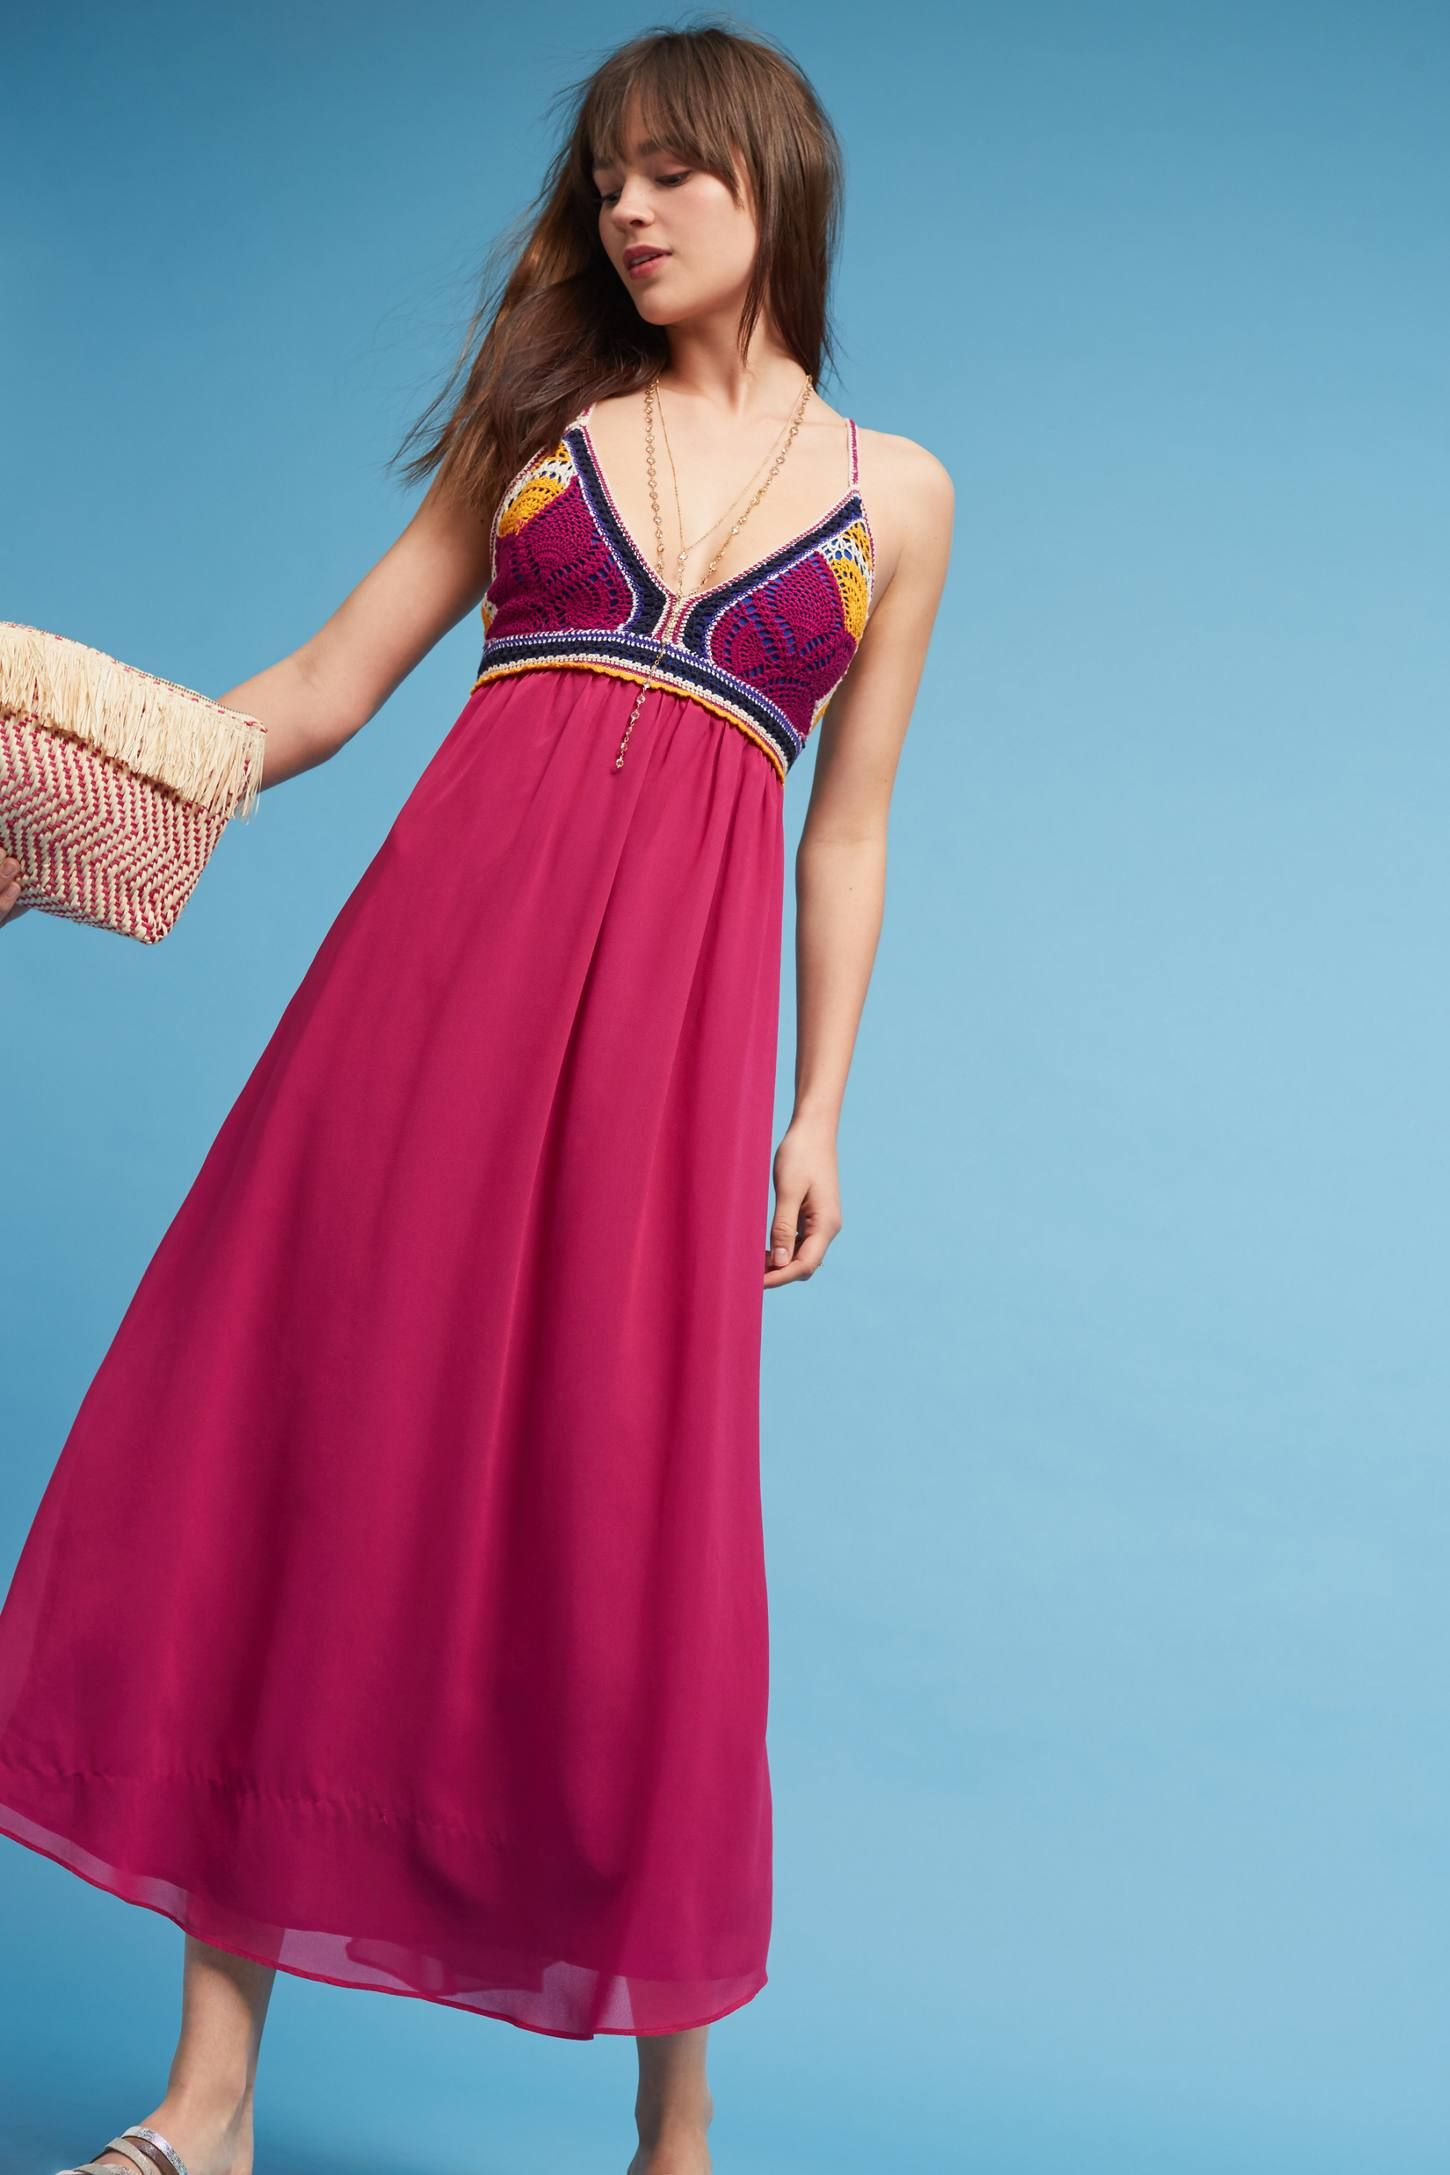 Slide View: 1: Sunset Crocheted Maxi Dress, Violet   My Style ...